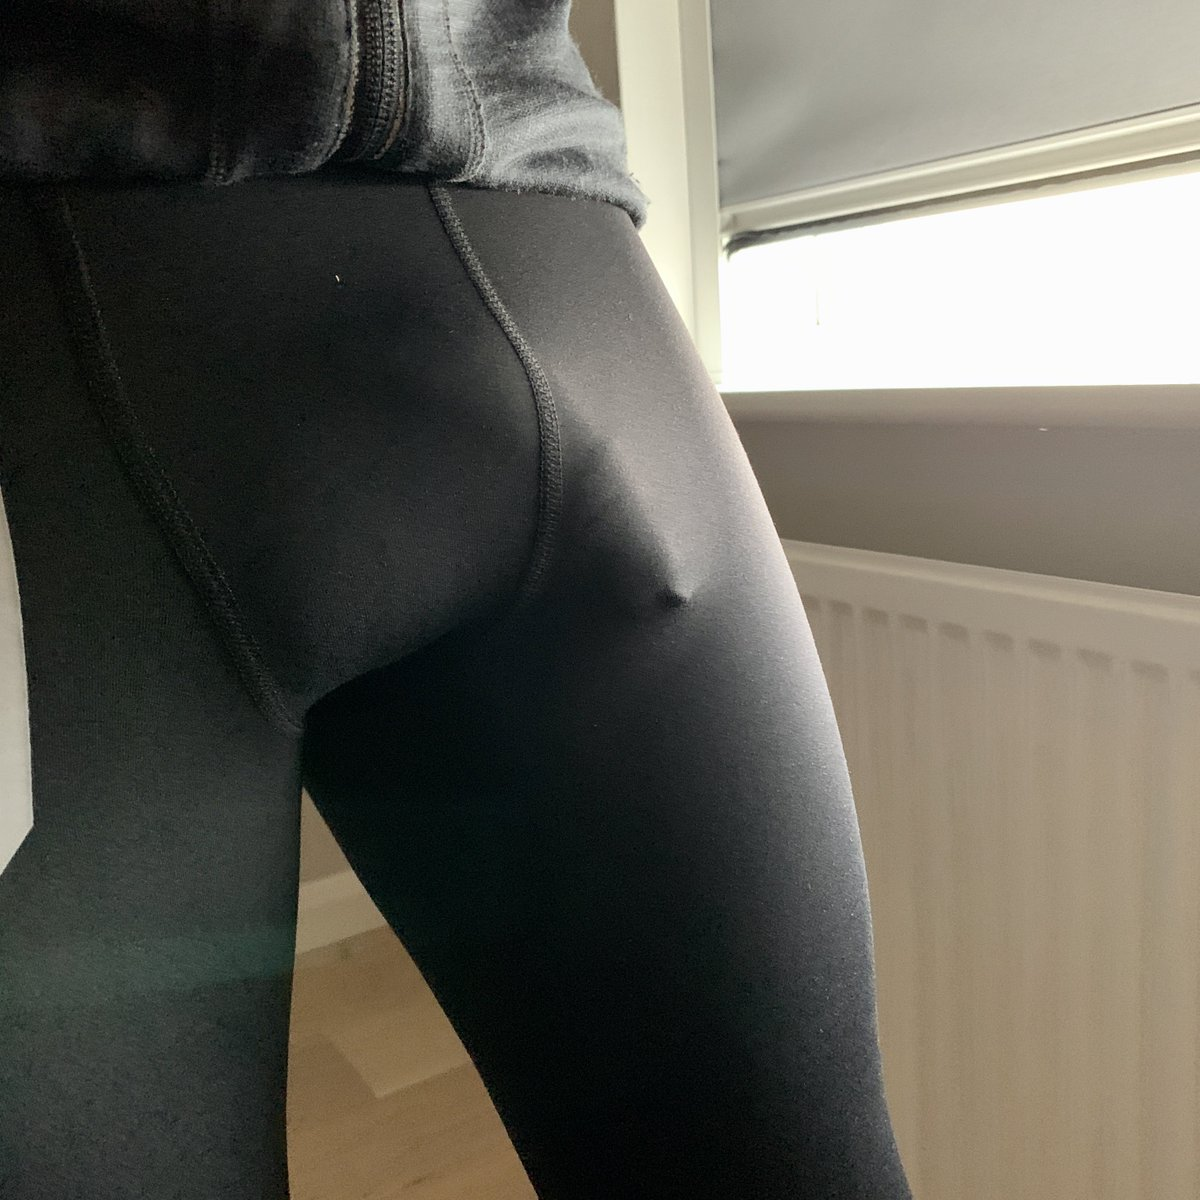 test Twitter Media - He is into a bit of public humiliation, so sending @emsedonyk out running in his new tights like this. https://t.co/NBdmyxsWH4